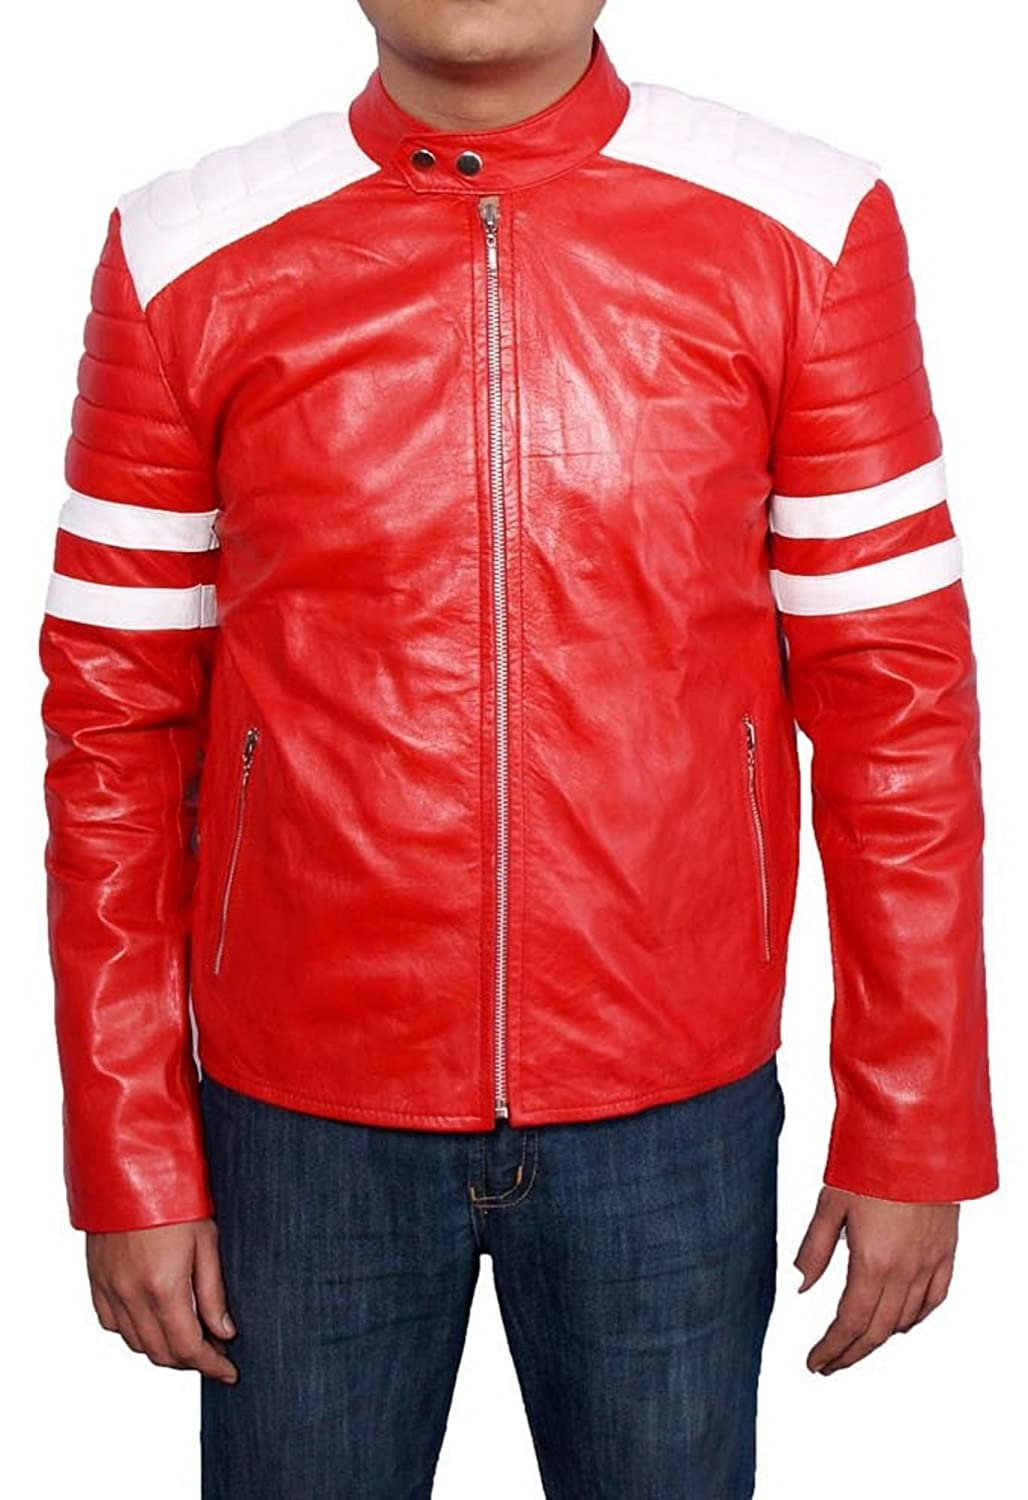 Men's Fight Club Leather Jacket